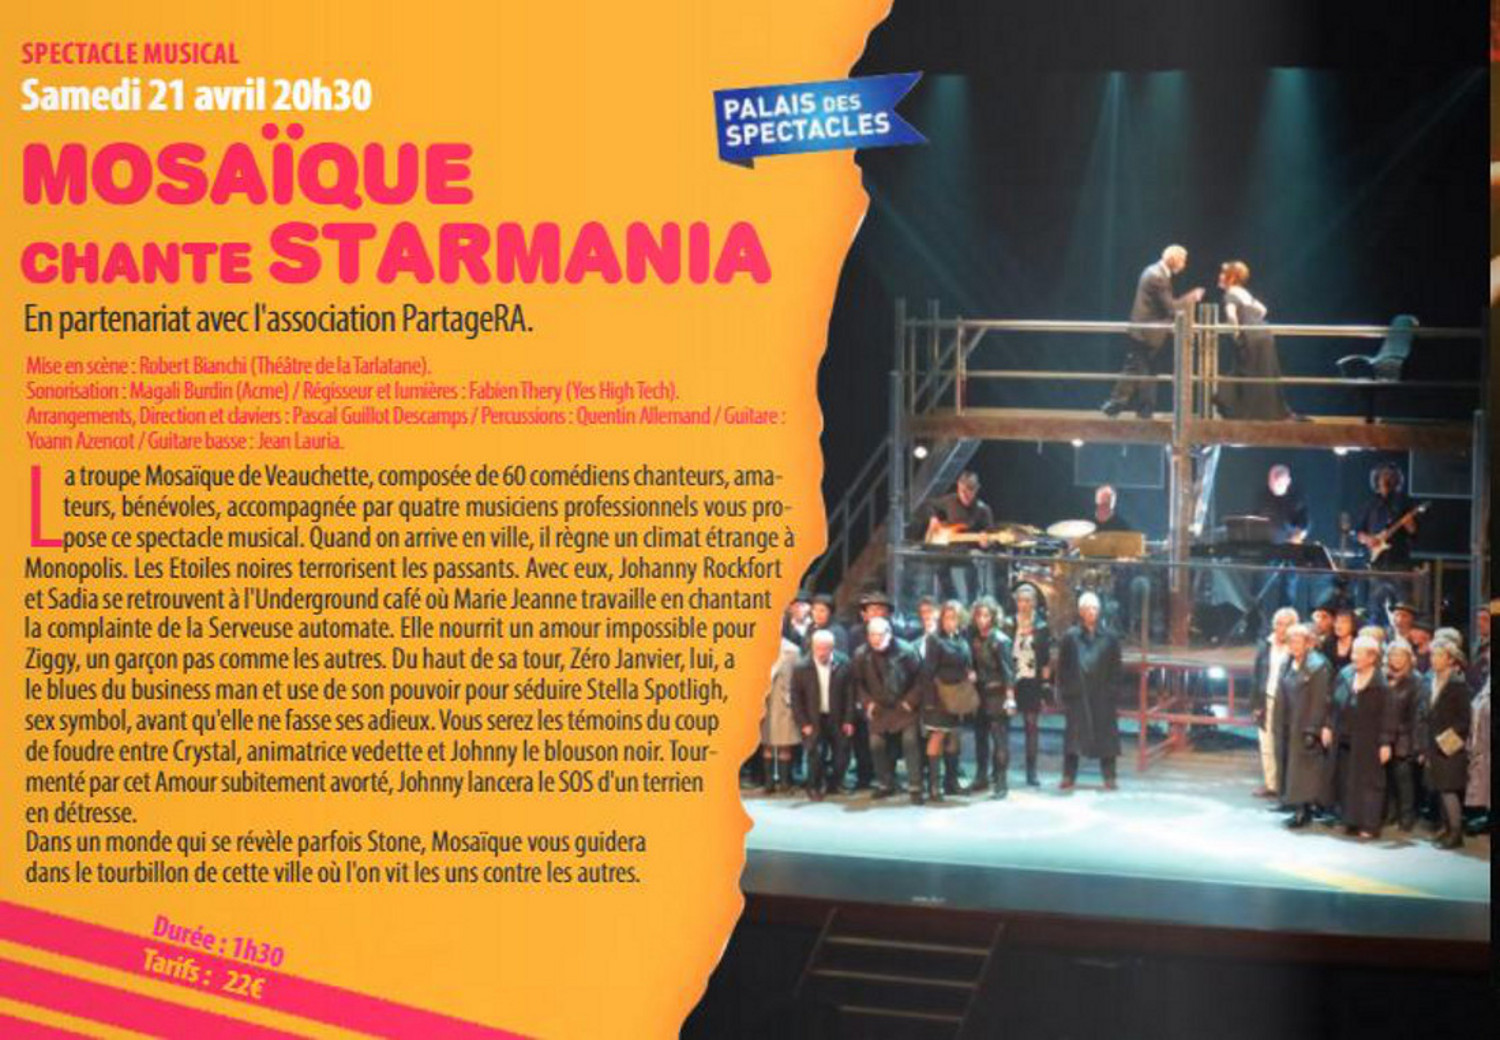 Spectacle Musical : Mosaïque chante Starmania